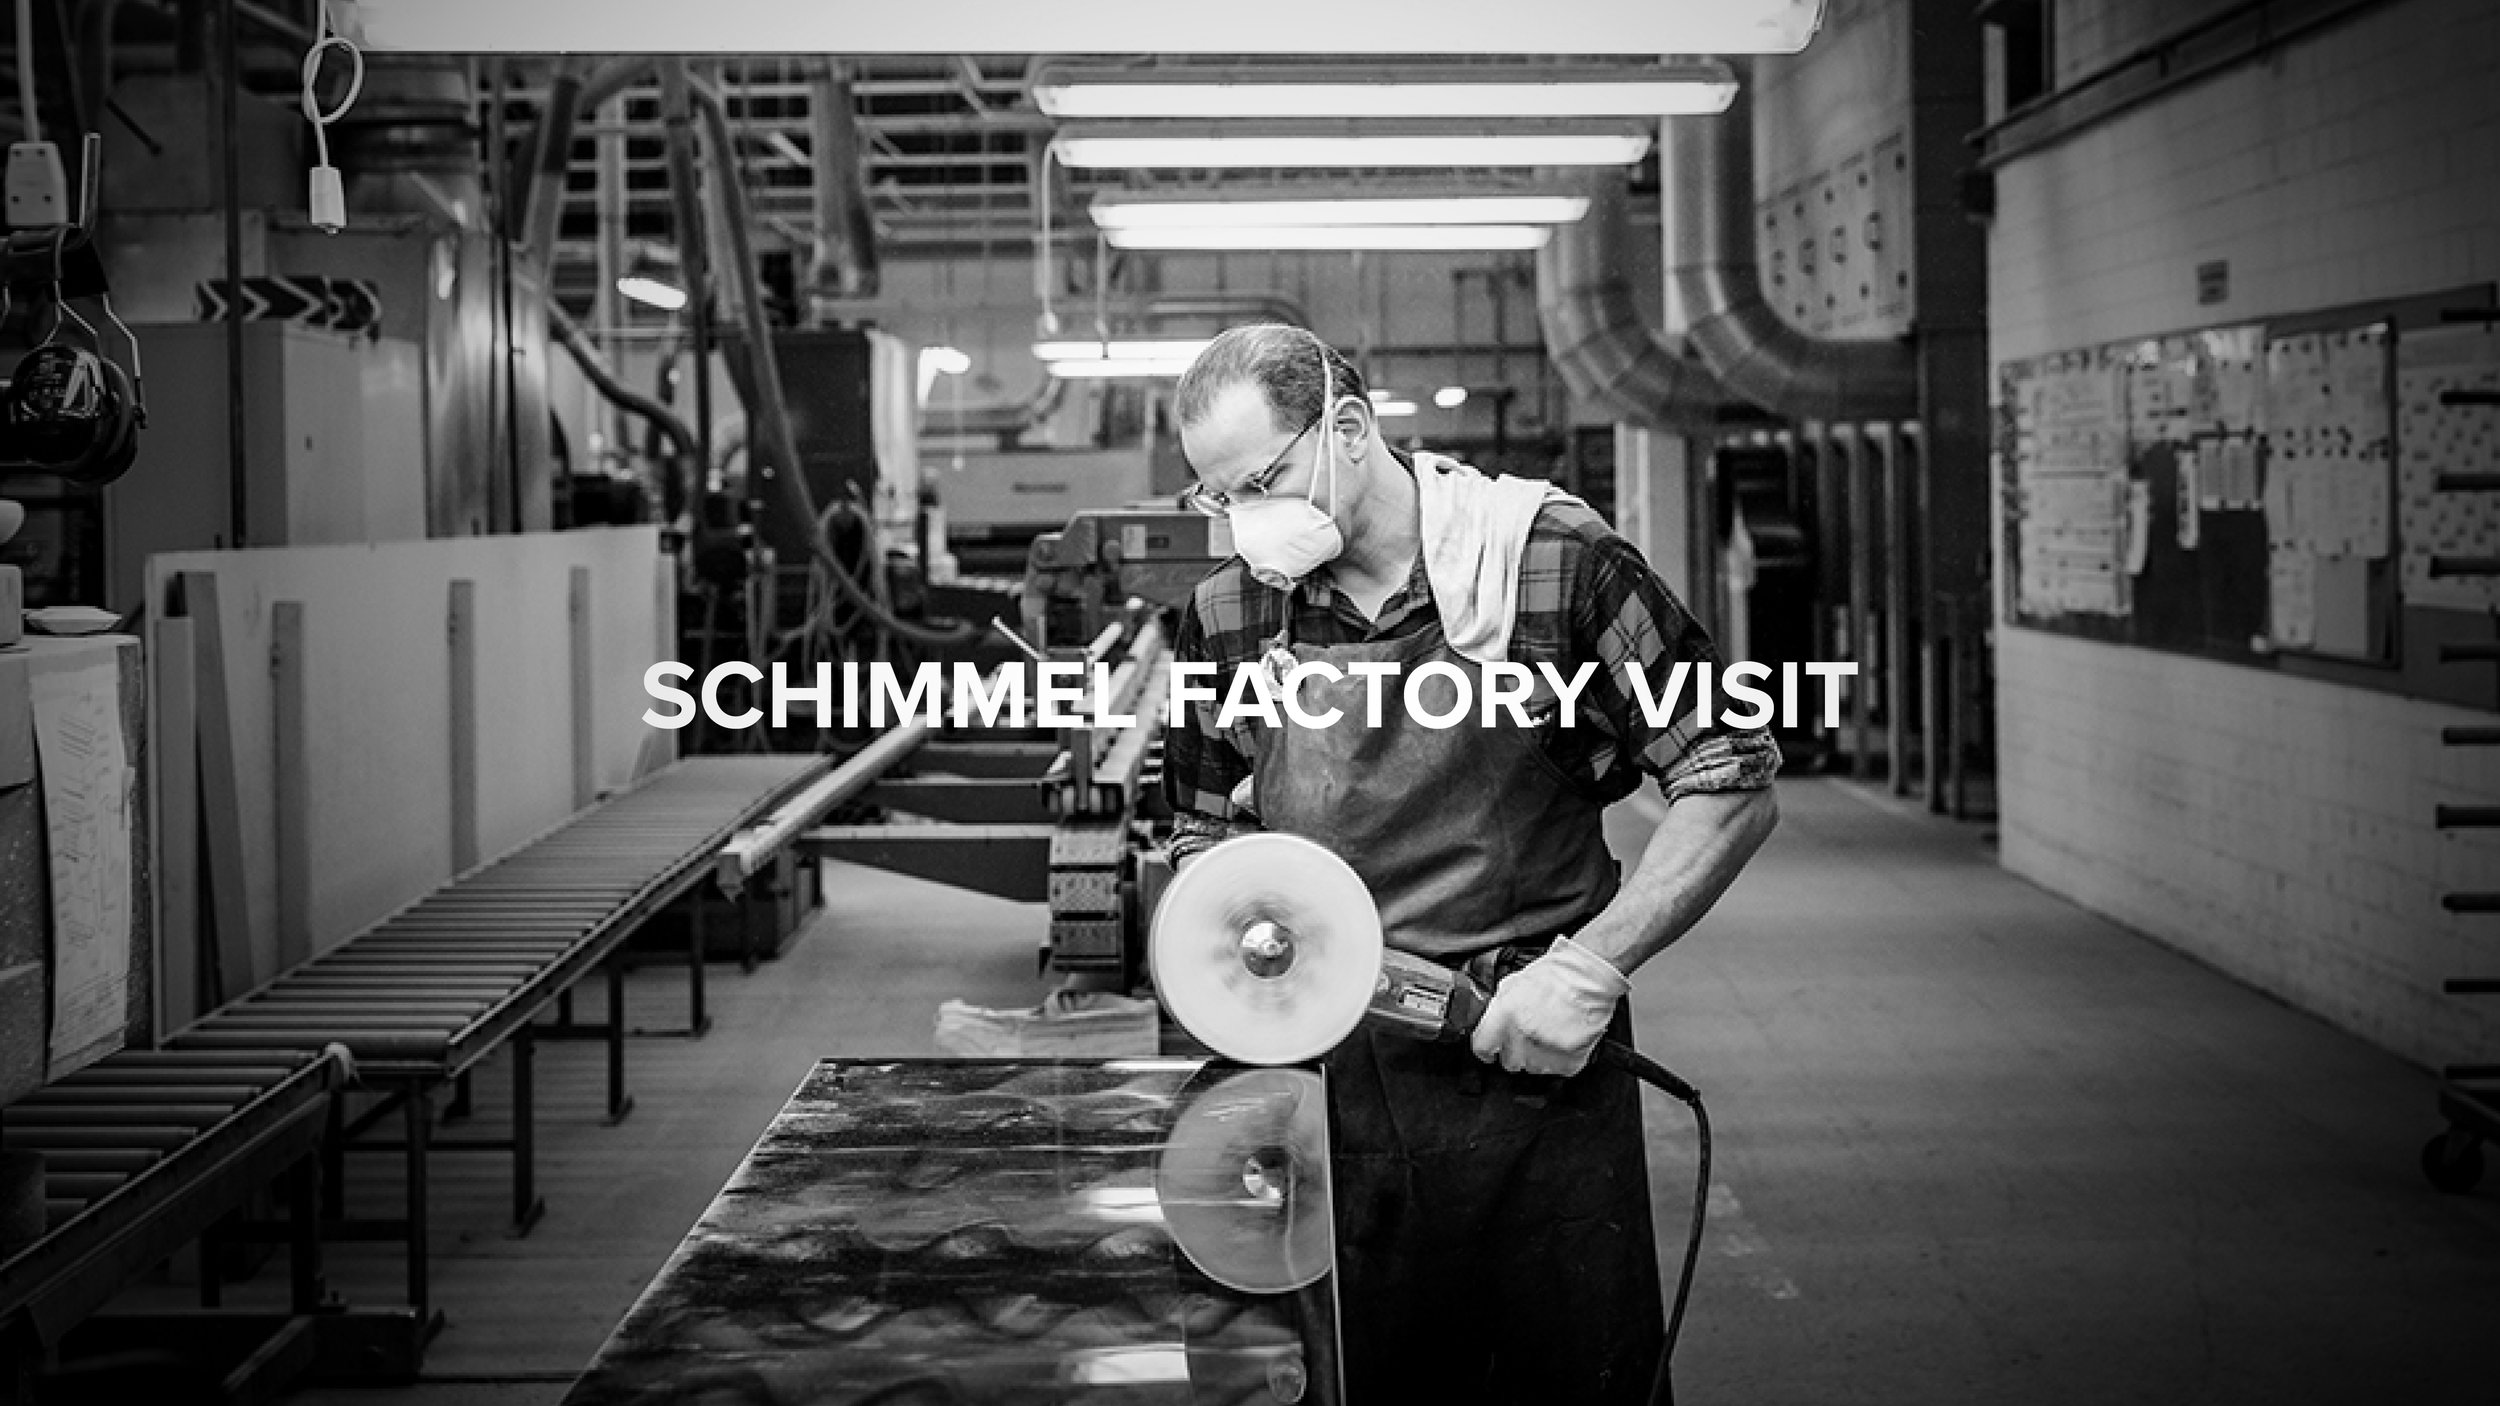 Schimmel Factory Visit - A ONCE IN A LIFETIME VISIT